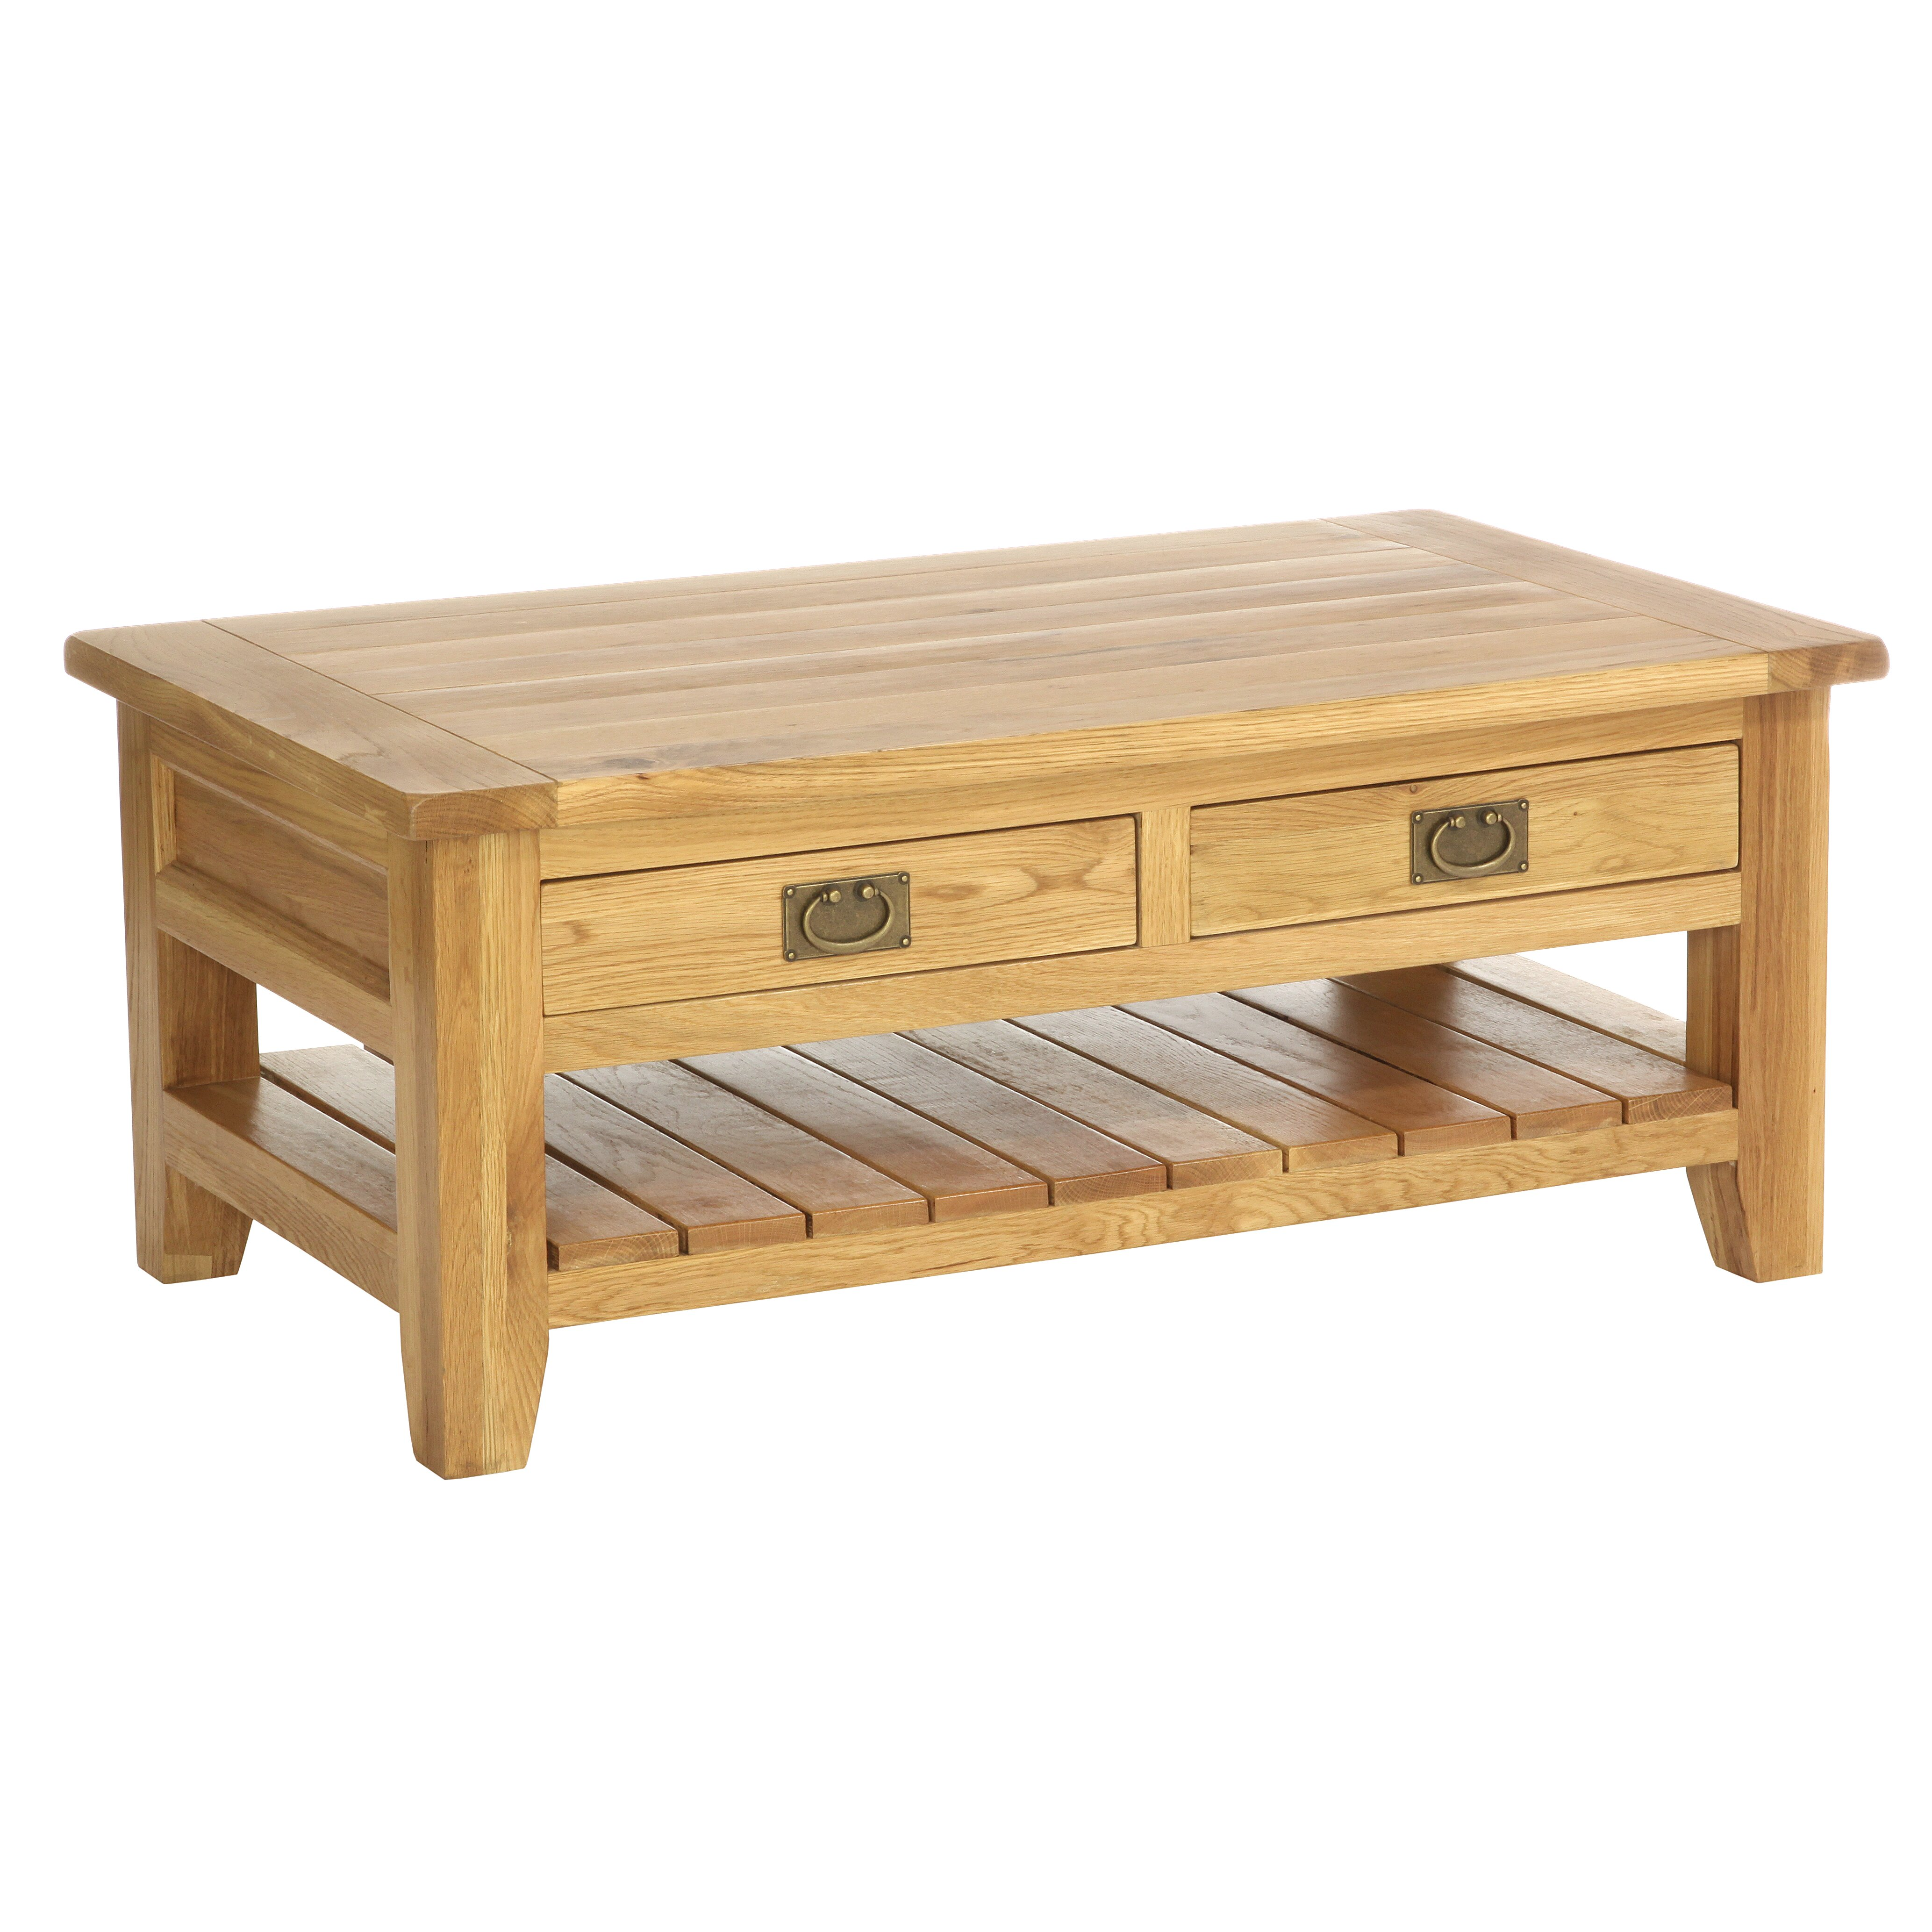 Besp oak vancouver coffee table wayfair for Coffee tables vancouver